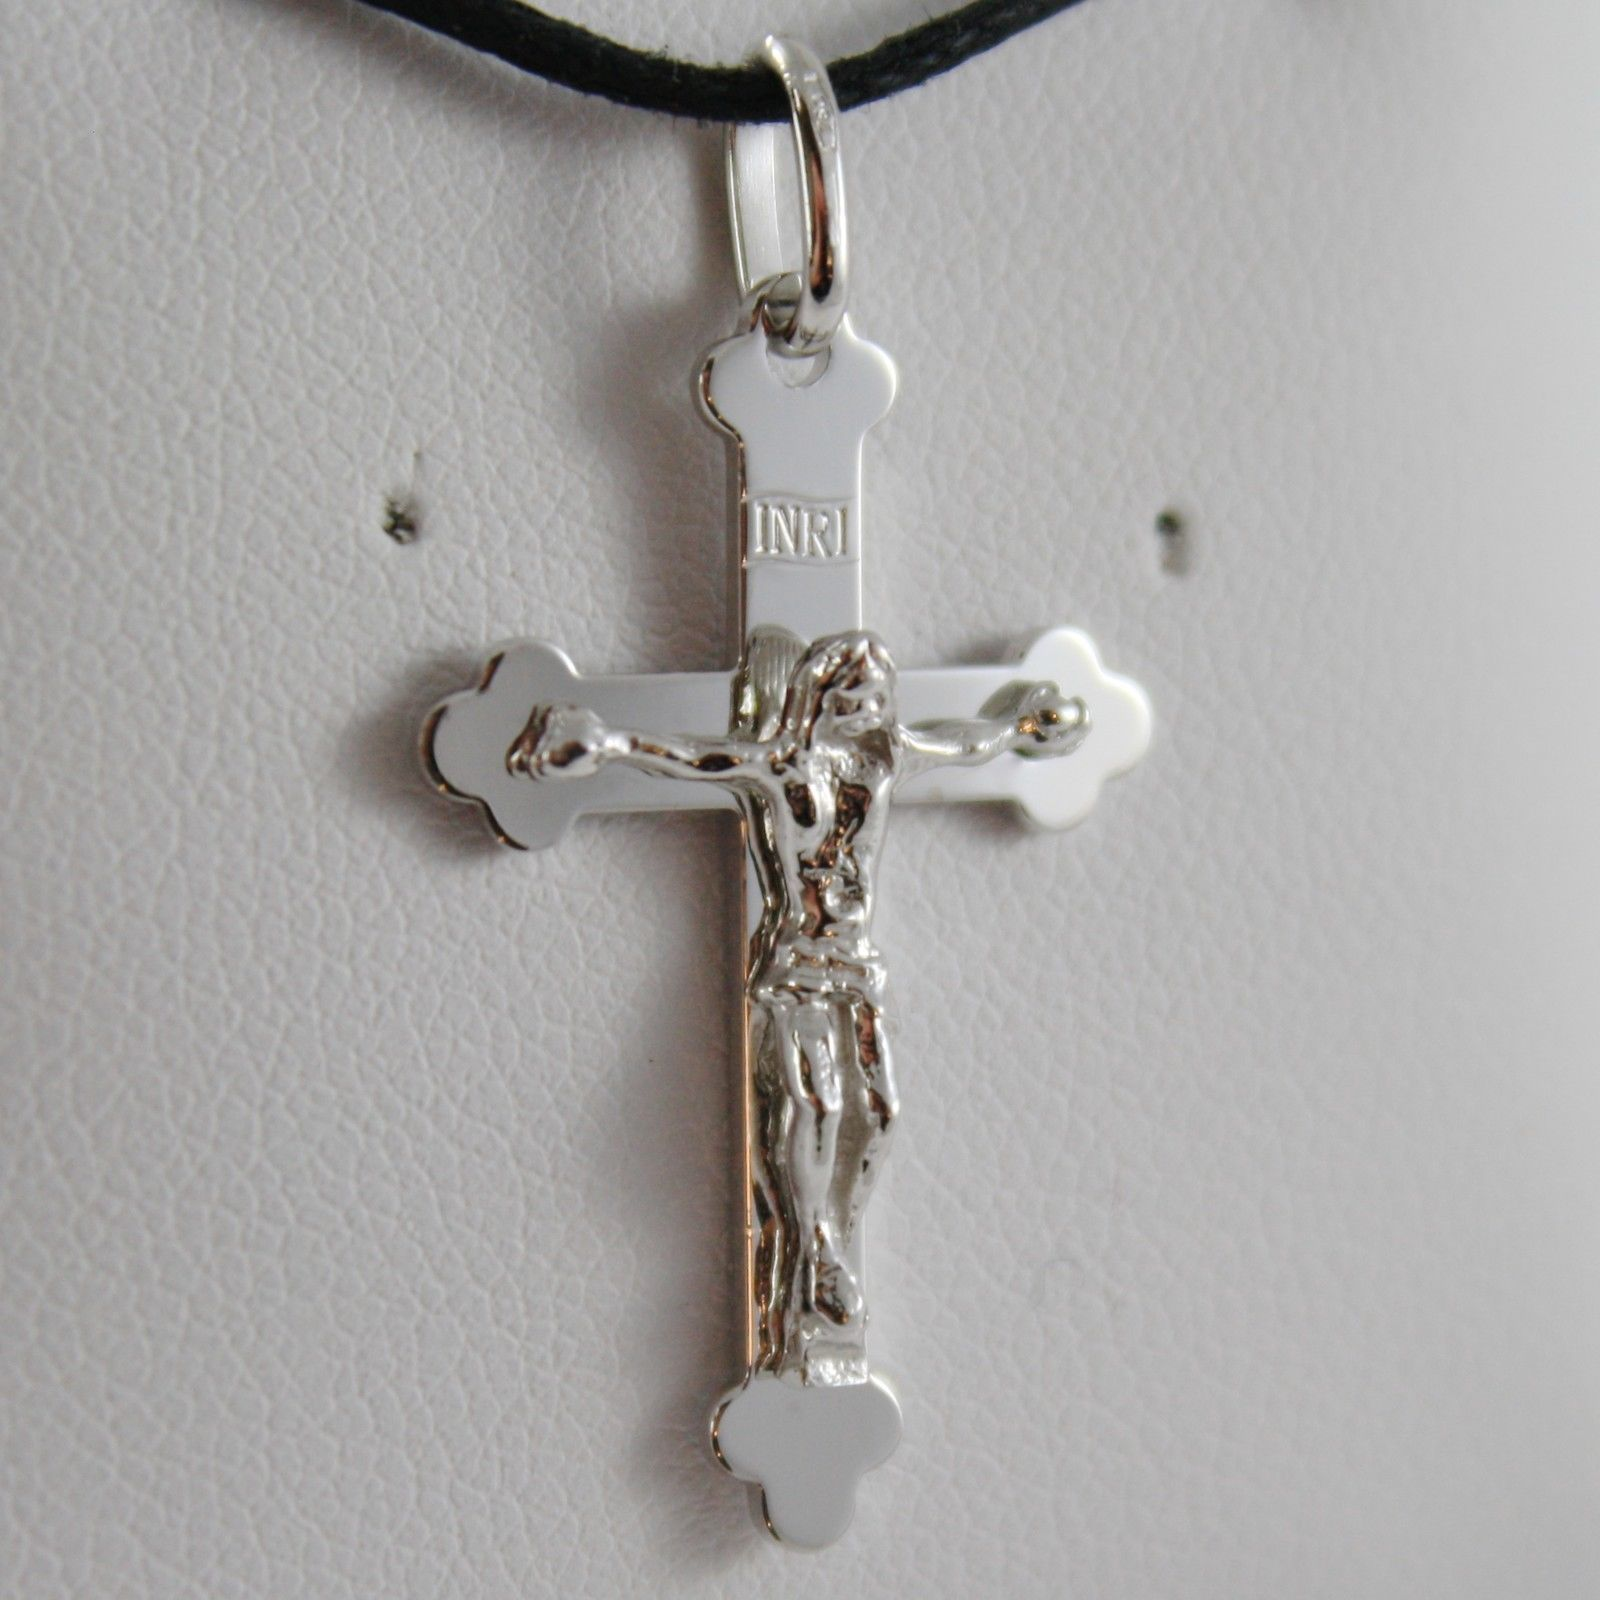 18K WHITE GOLD CROSS WITH JESUS, SMOOTH, FINELY WORKED ENGRAVABLE MADE IN ITALY